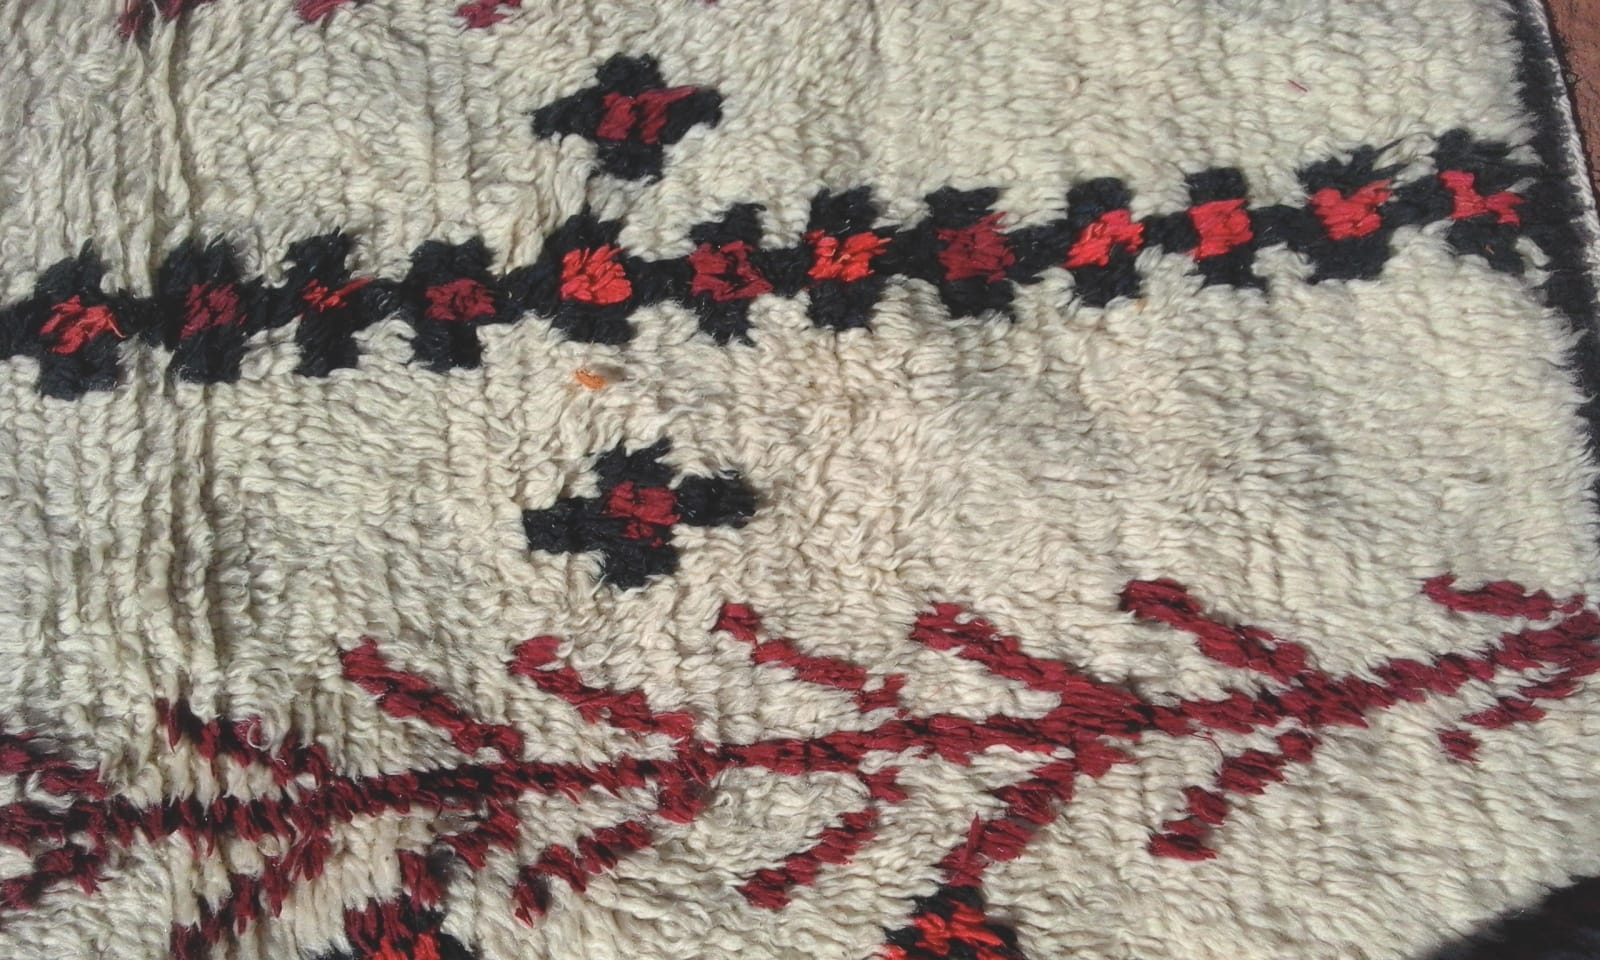 Pile Knot Rug Wool Red, Black Morocco